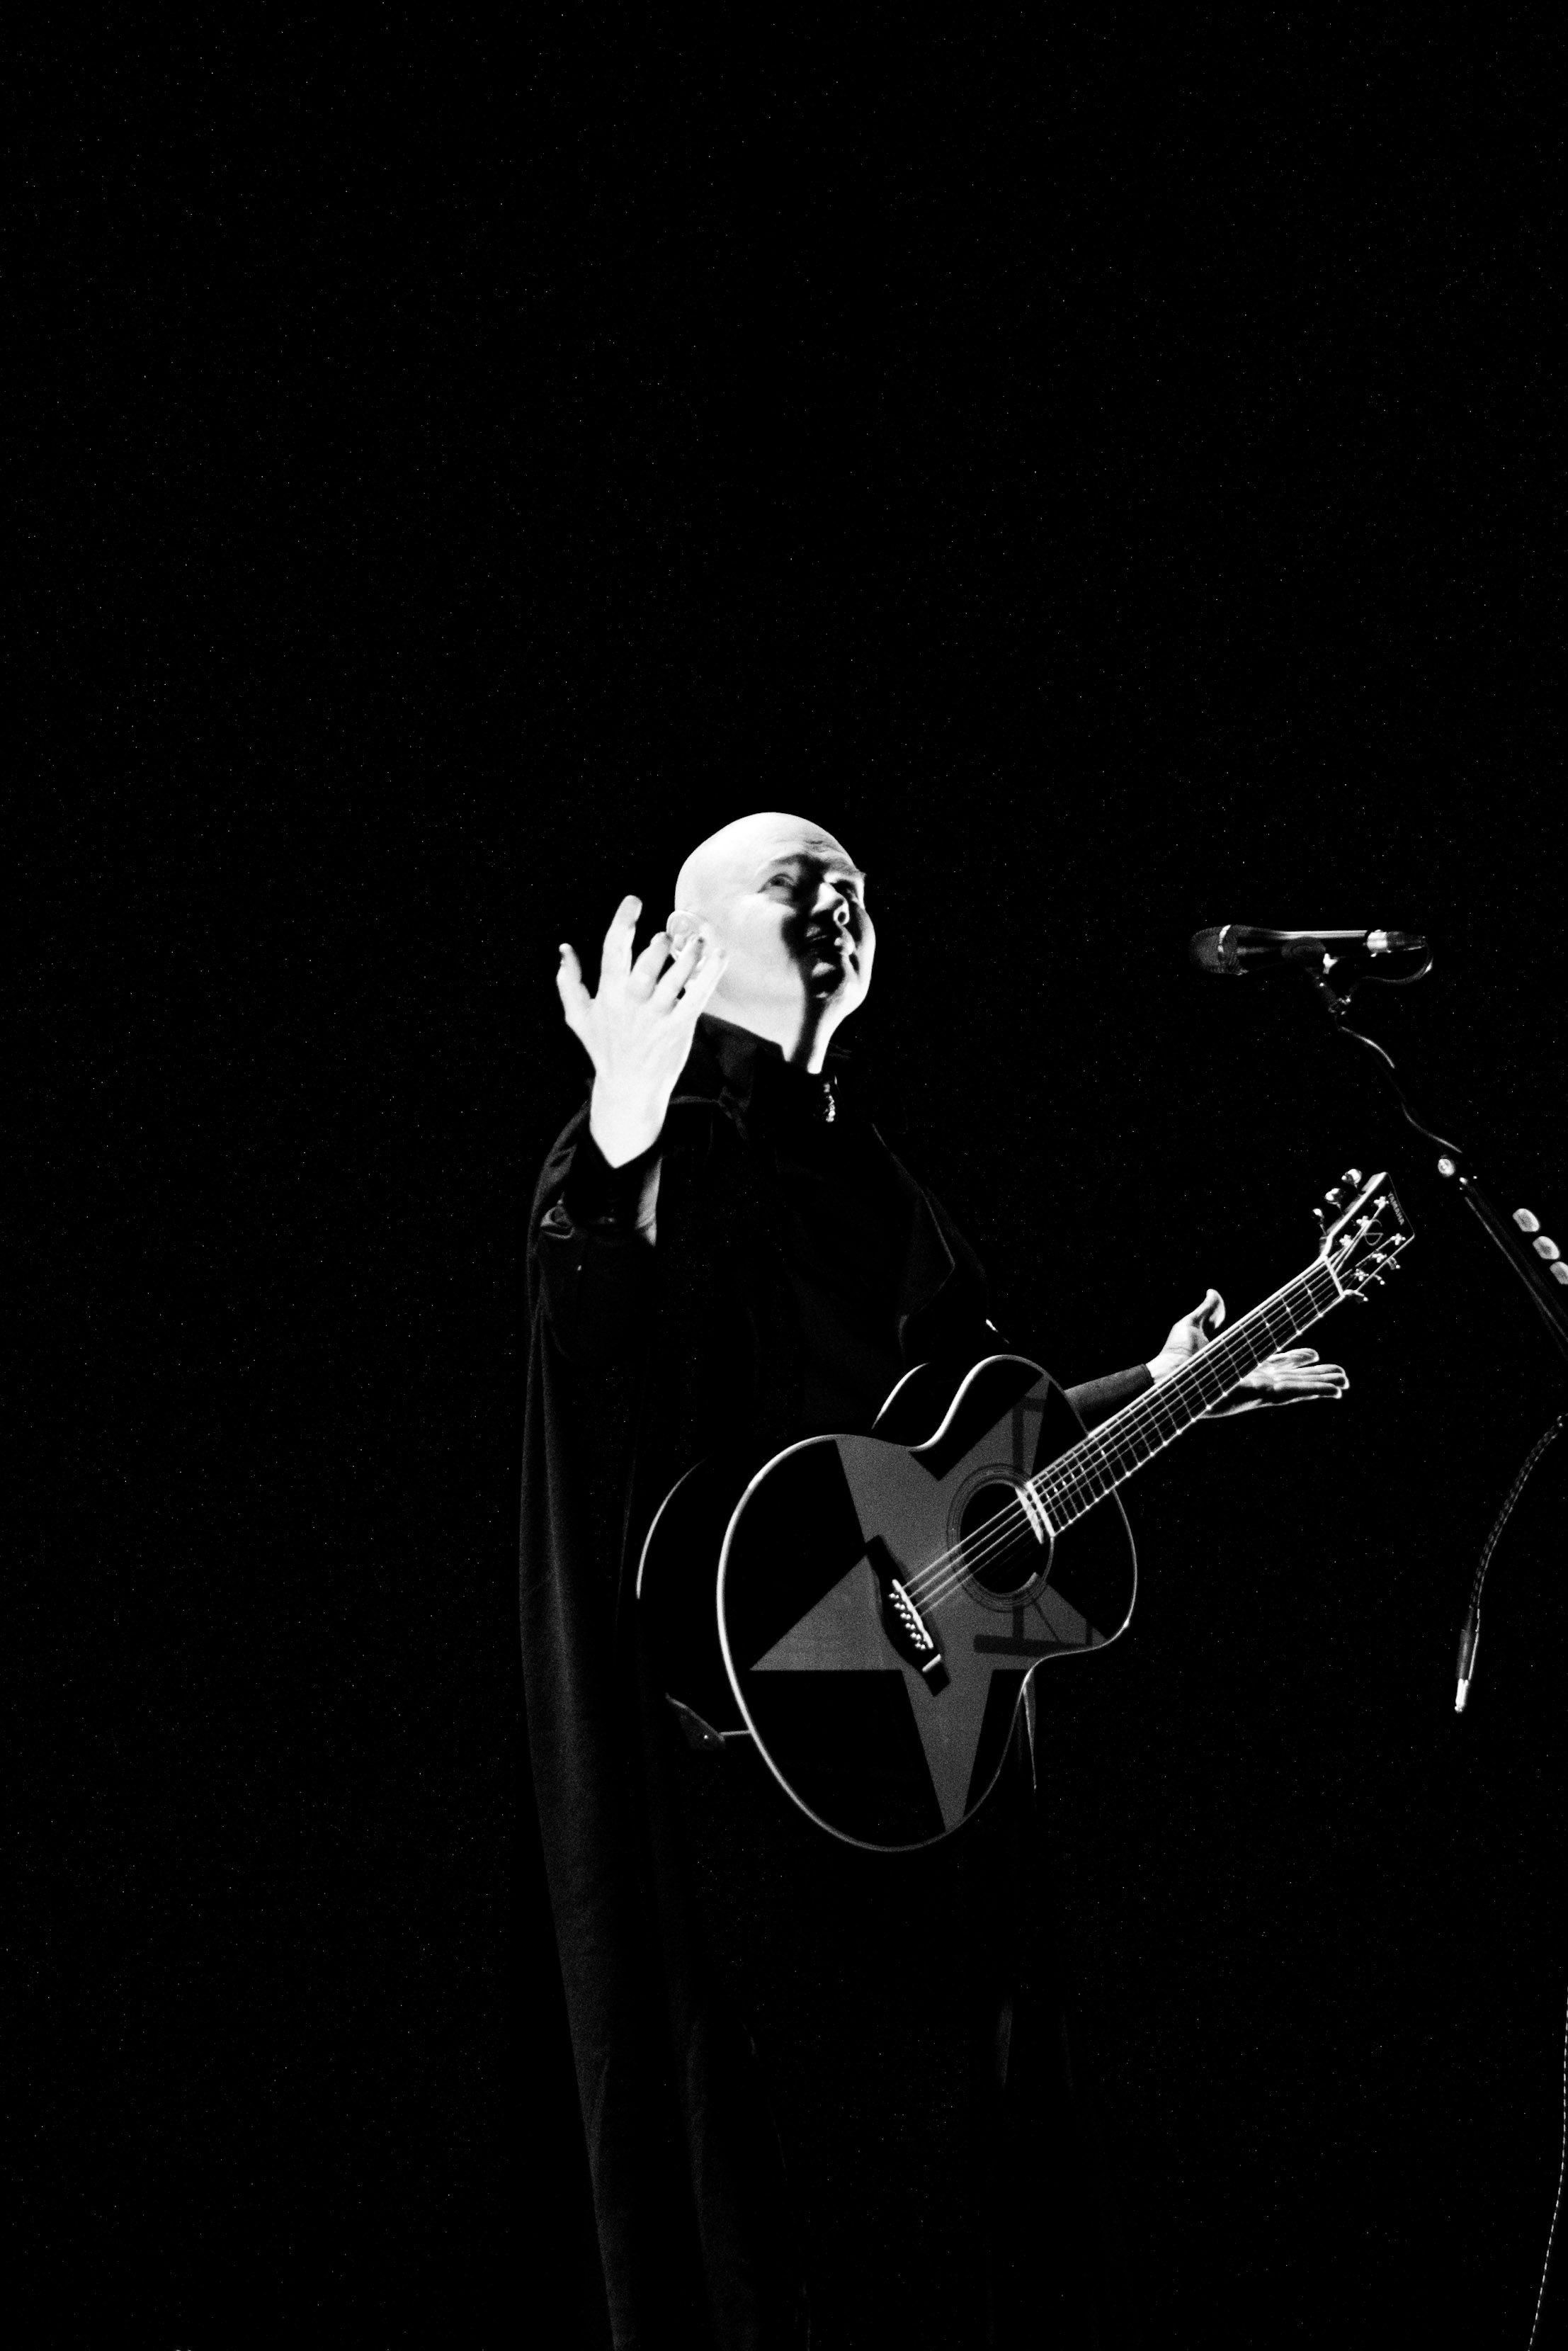 Photos | Billy Corgan plays a sold-out solo show at the Olympia Theatre